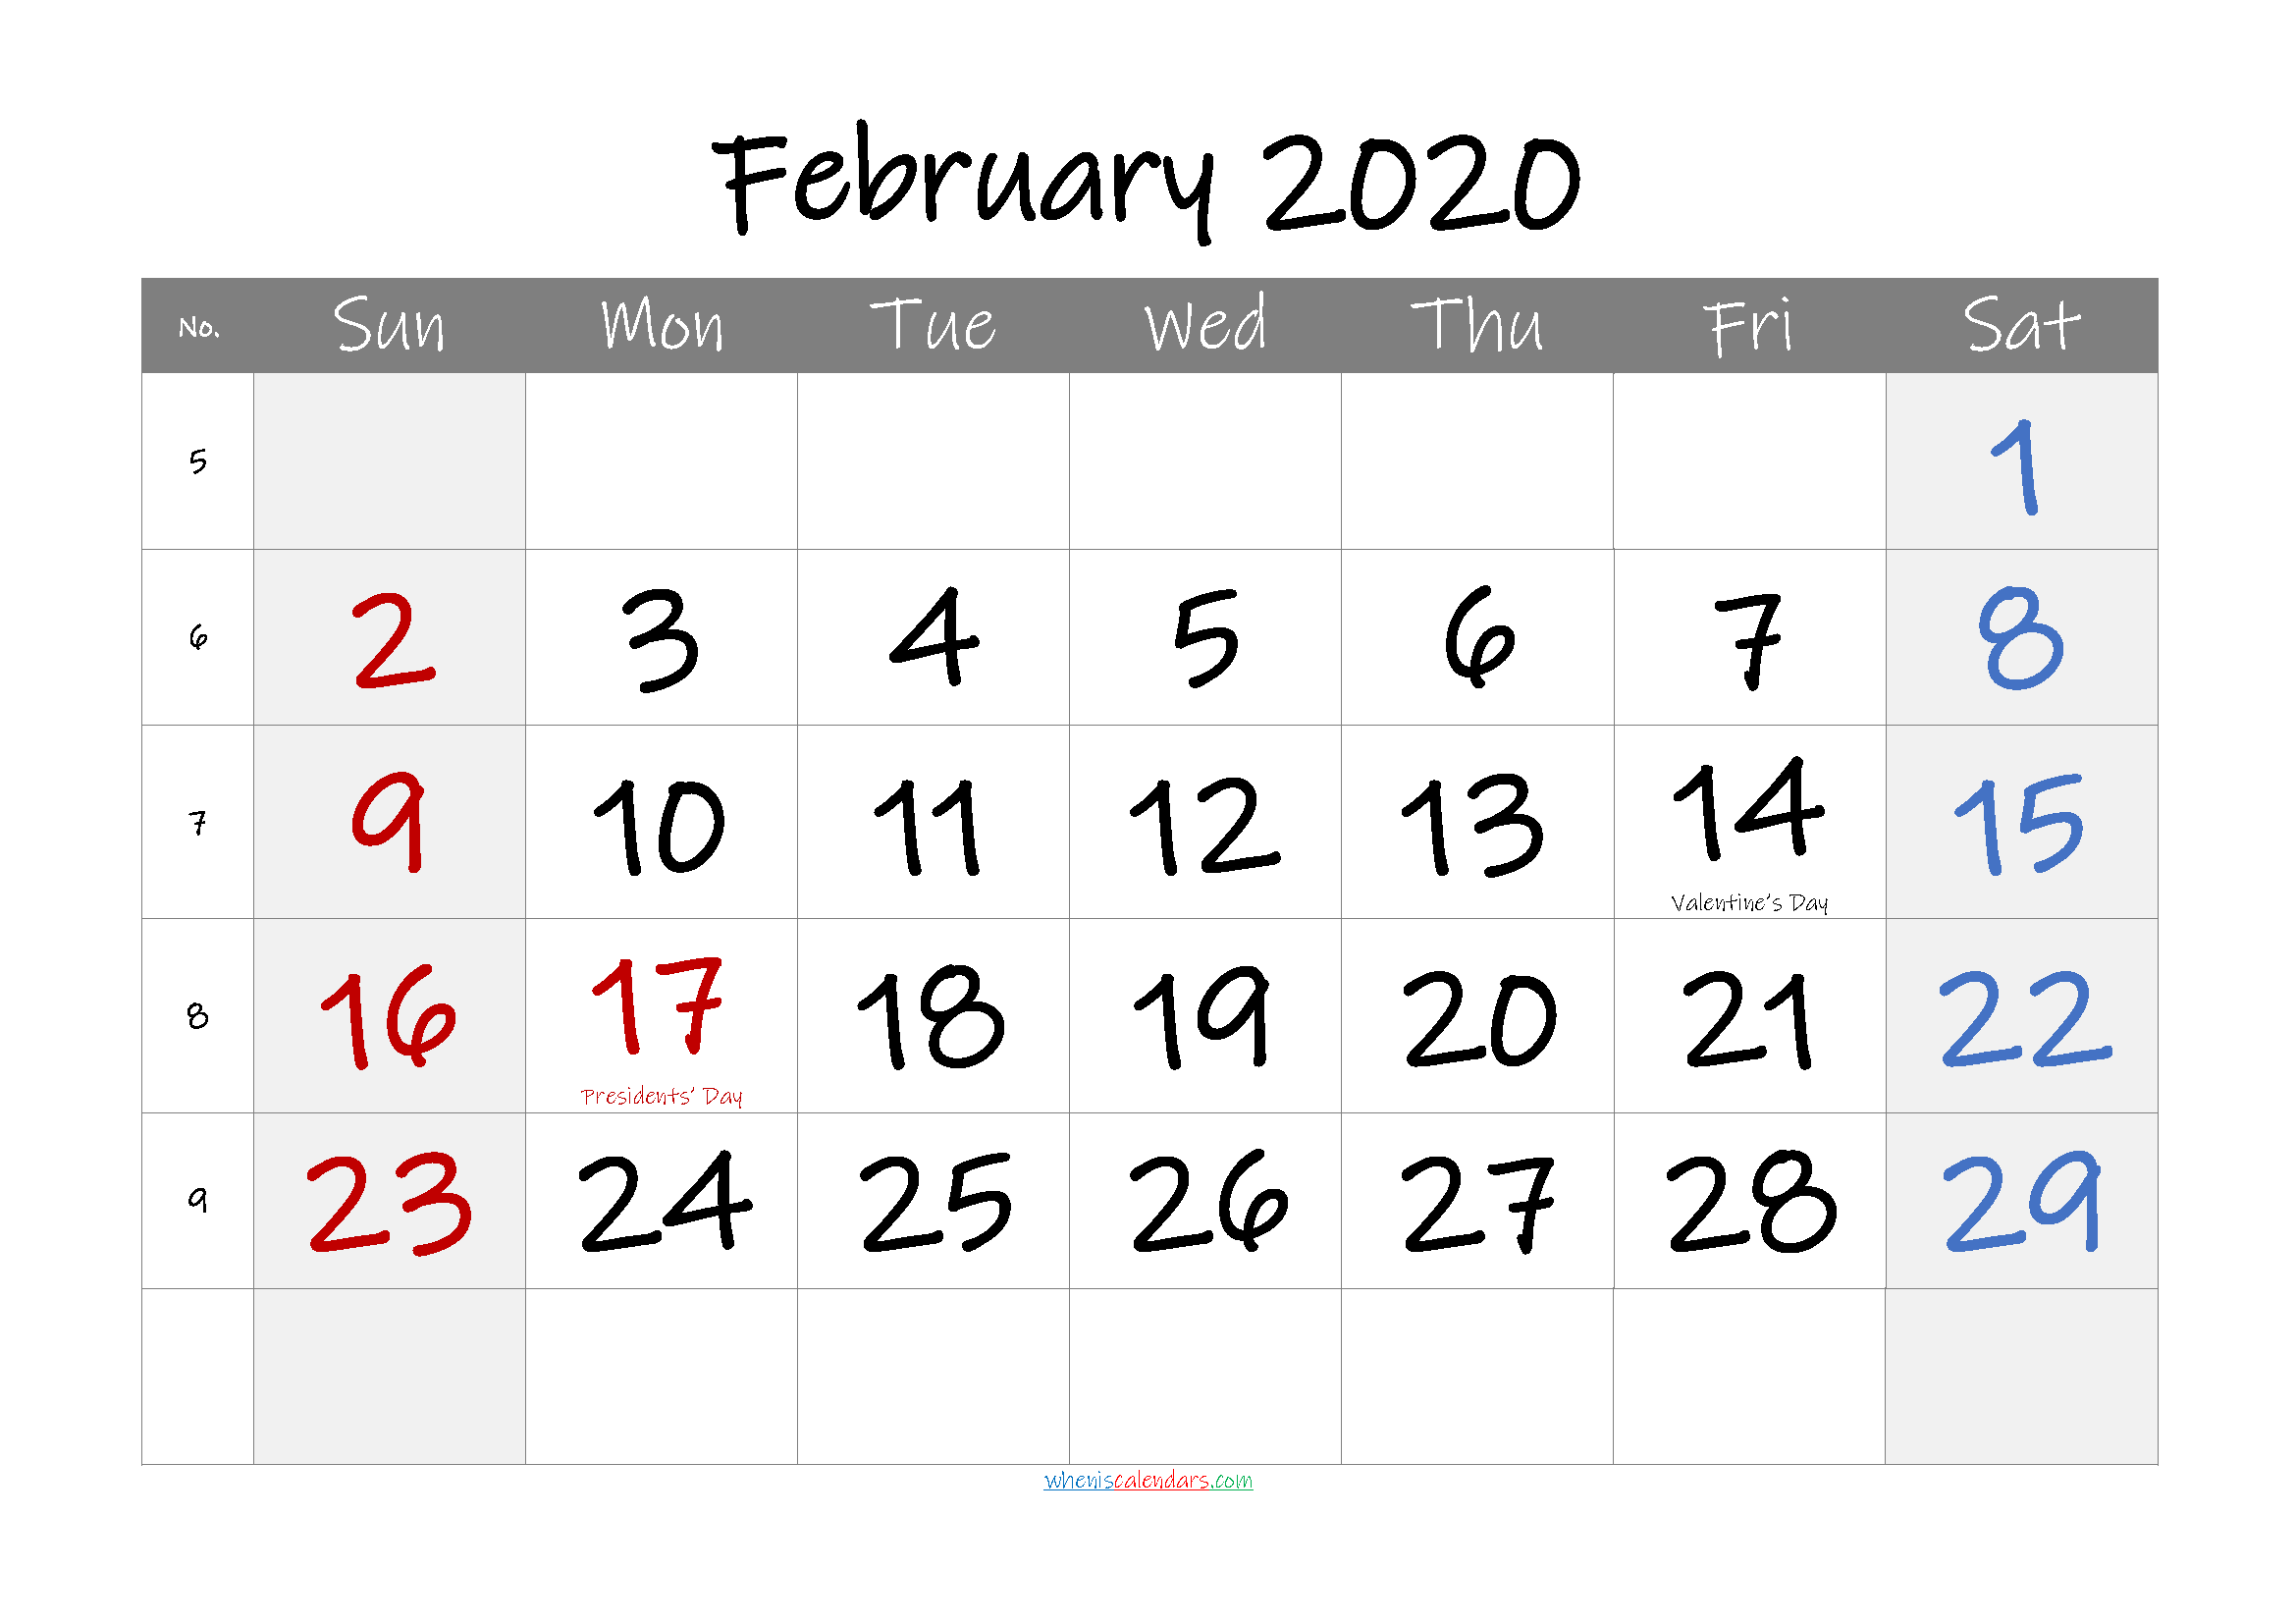 February 2020 Free Printable Calendar with Holidays